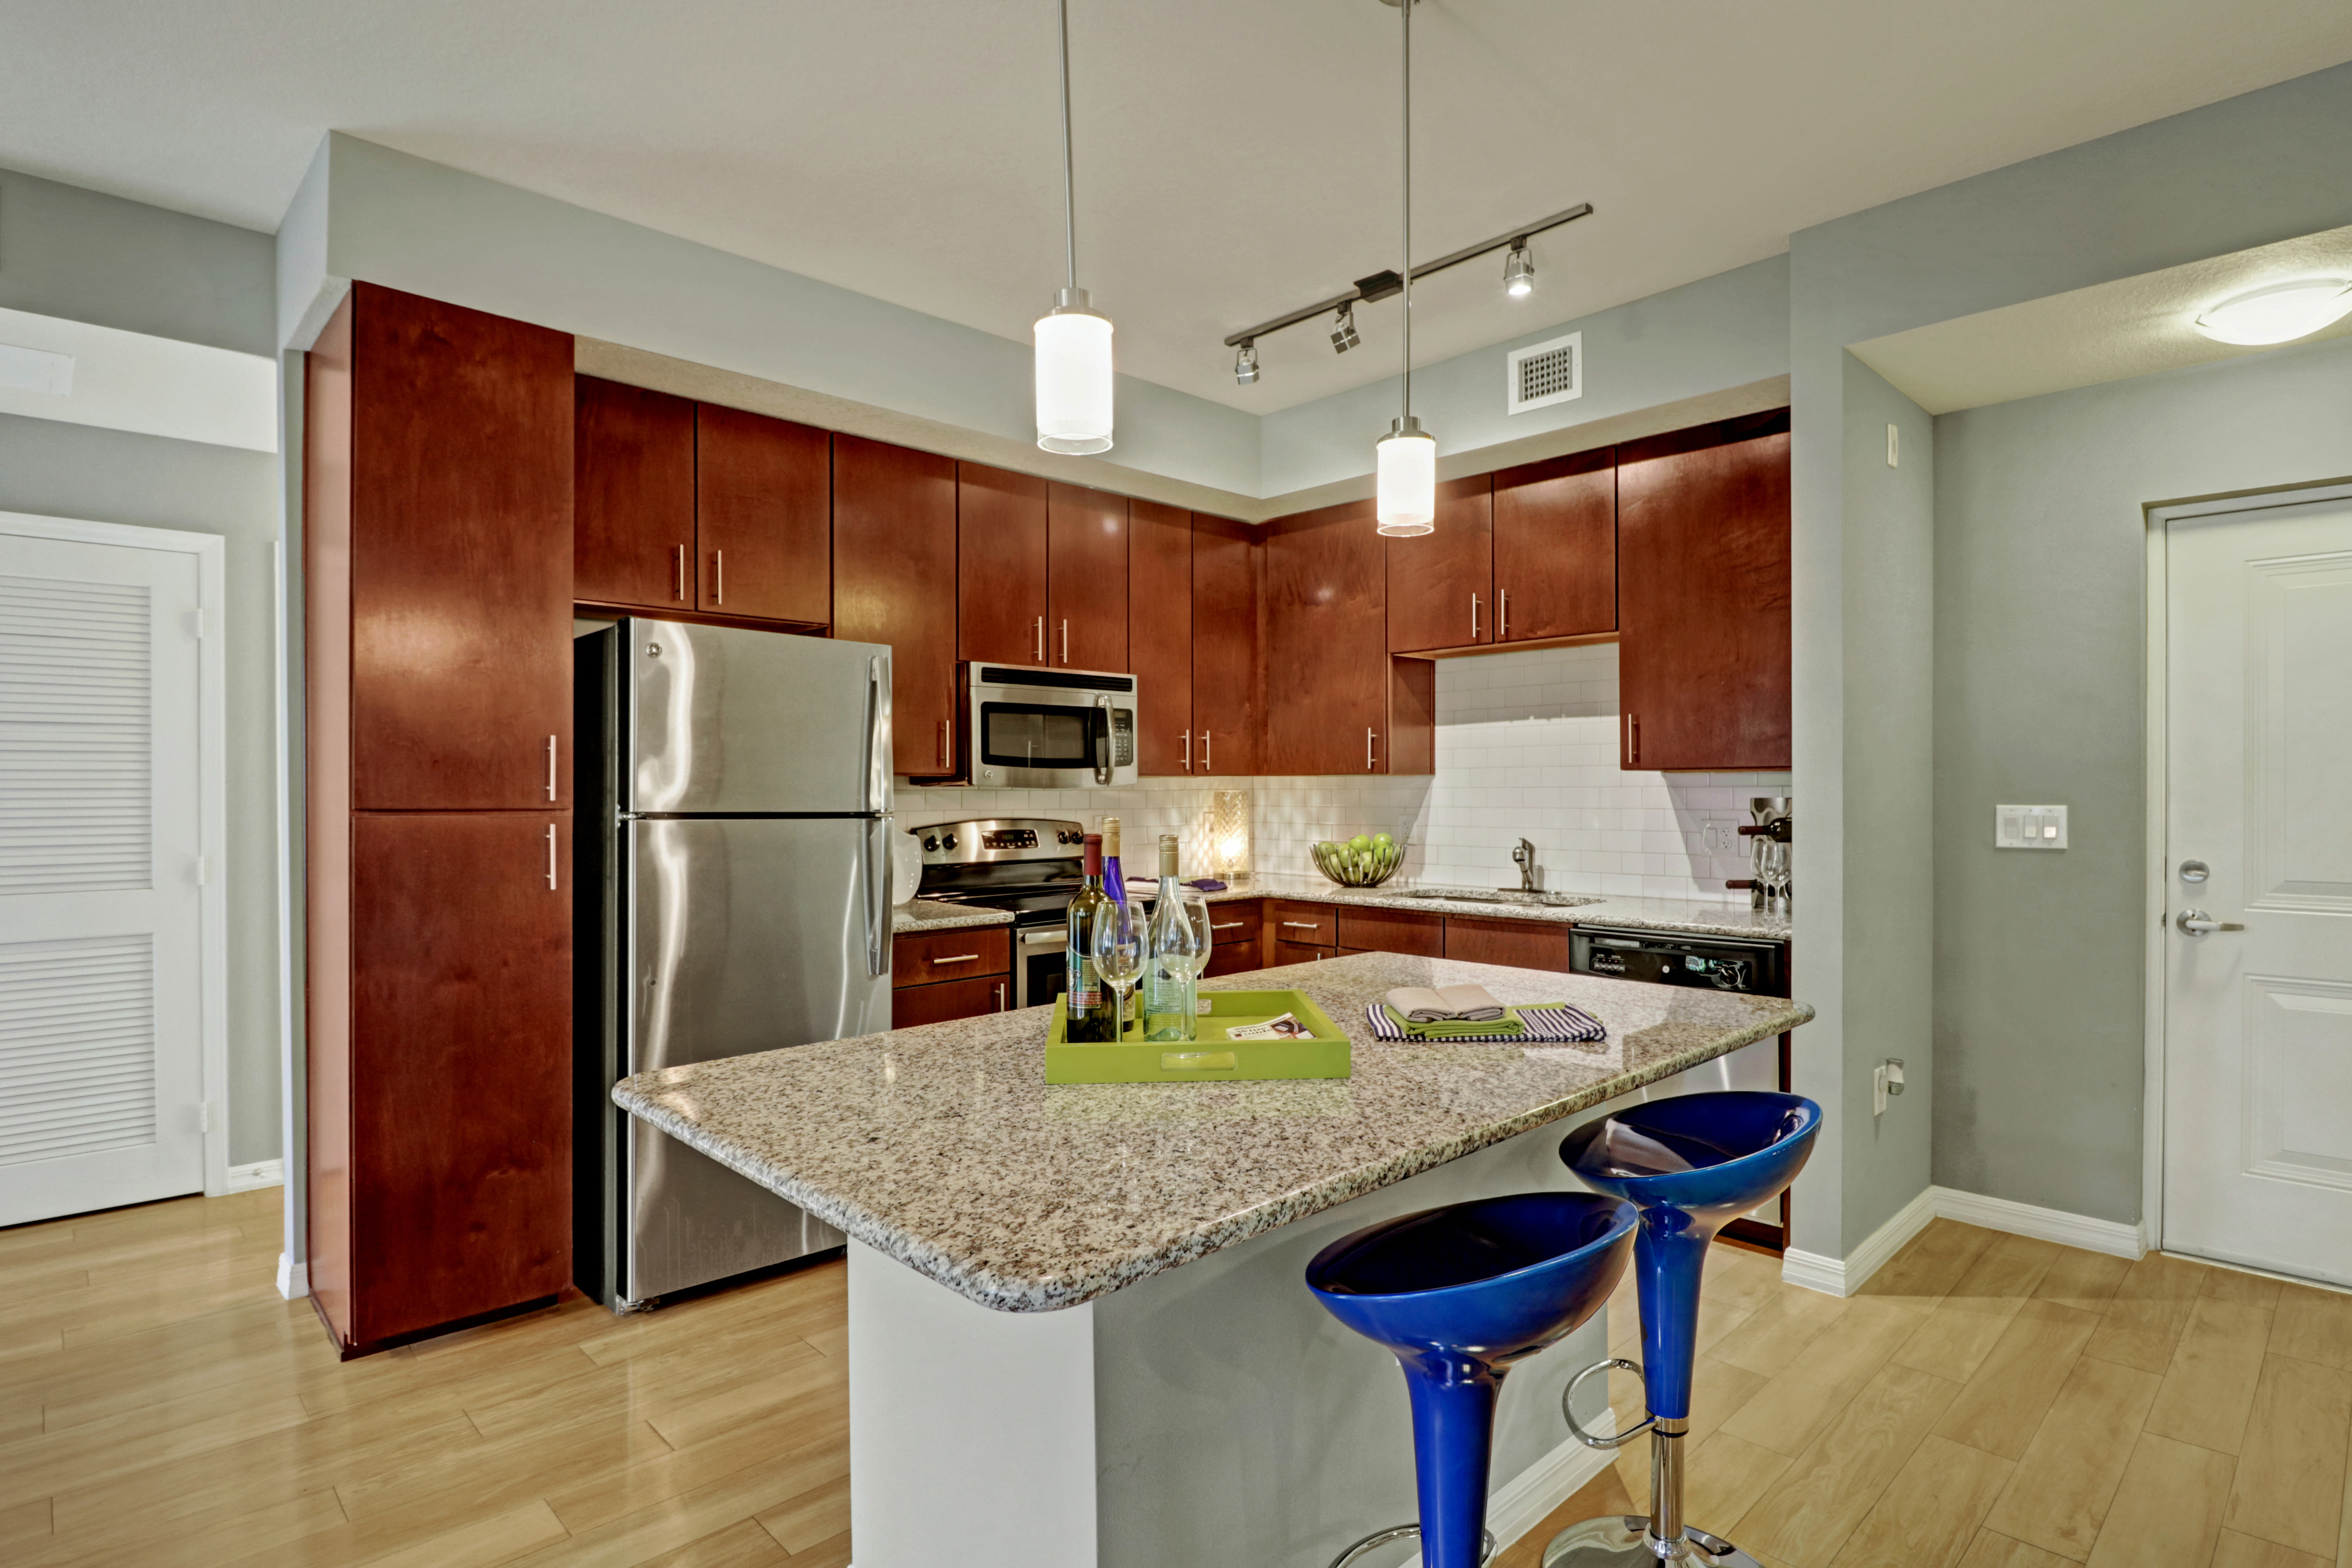 Kitchen at Linden Pointe in Pompano Beach, Florida features an island with barstool seating